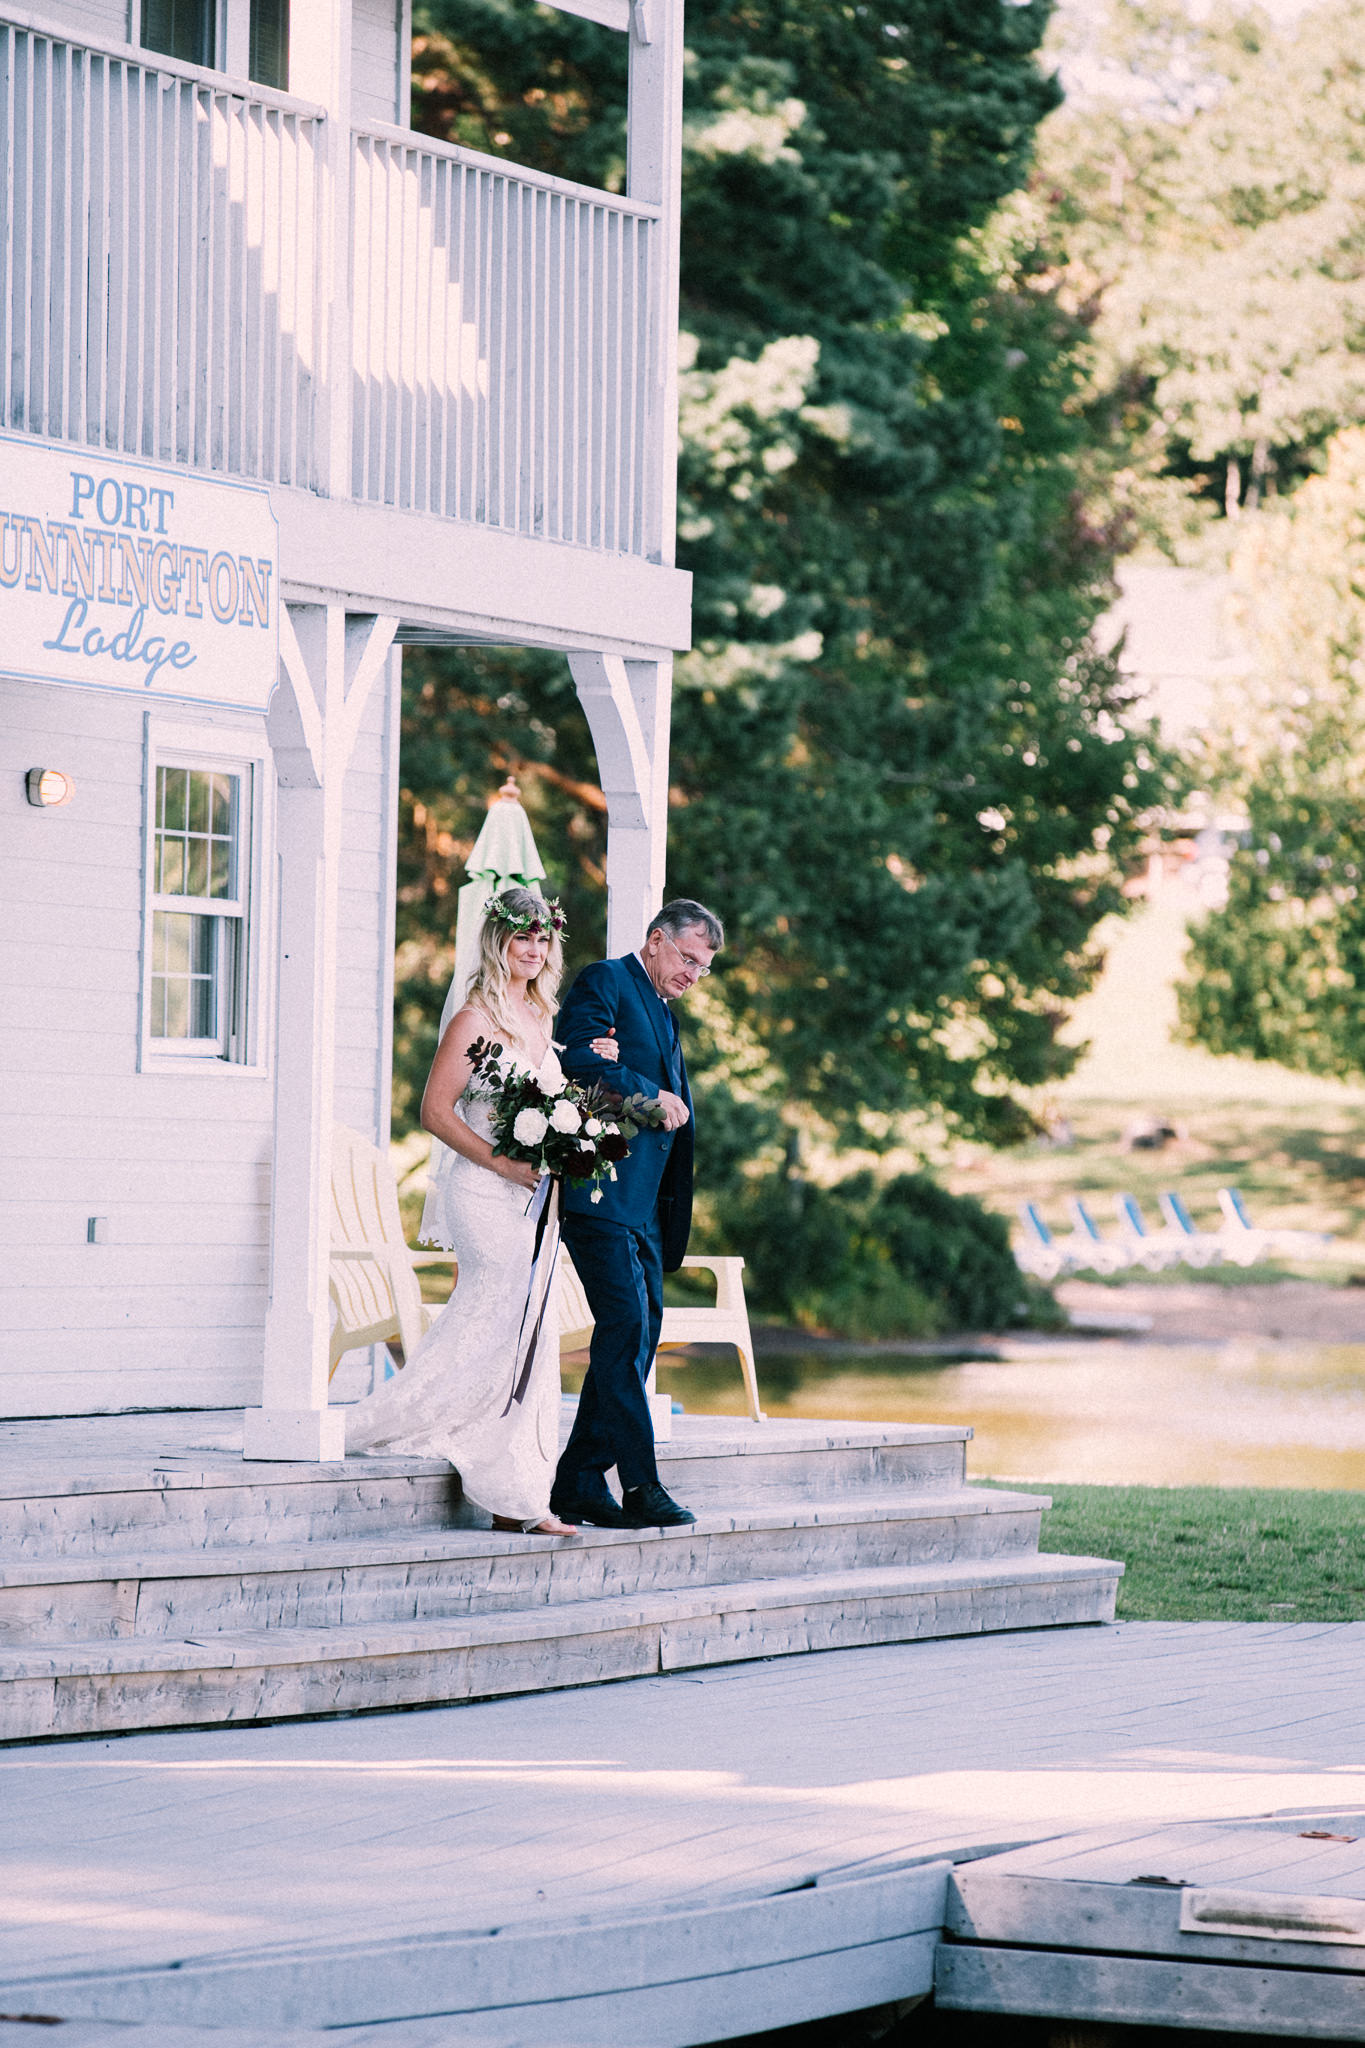 Muskoka lakeside wedding at Port Cunnington Lodge by Max Wong Photo (43)